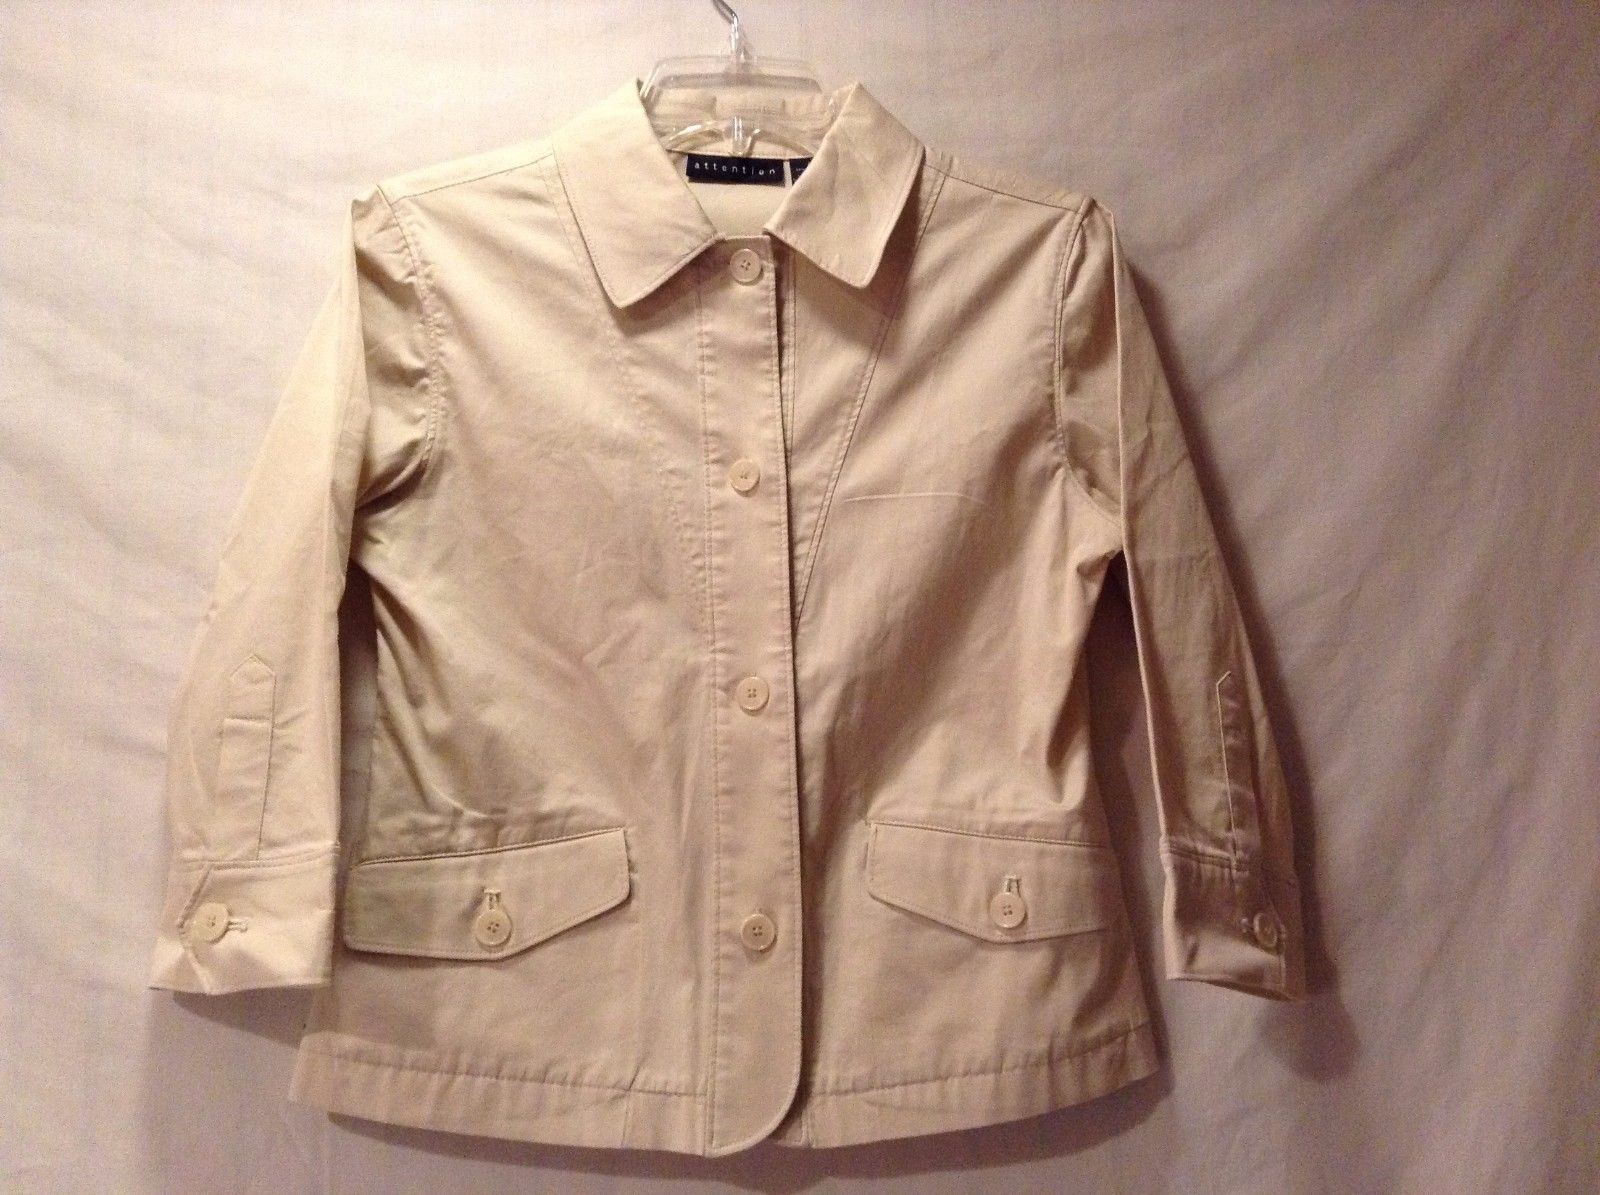 Great Condition Attention Size 4 Cotton Blend Button Up Jacket 2 Pockets